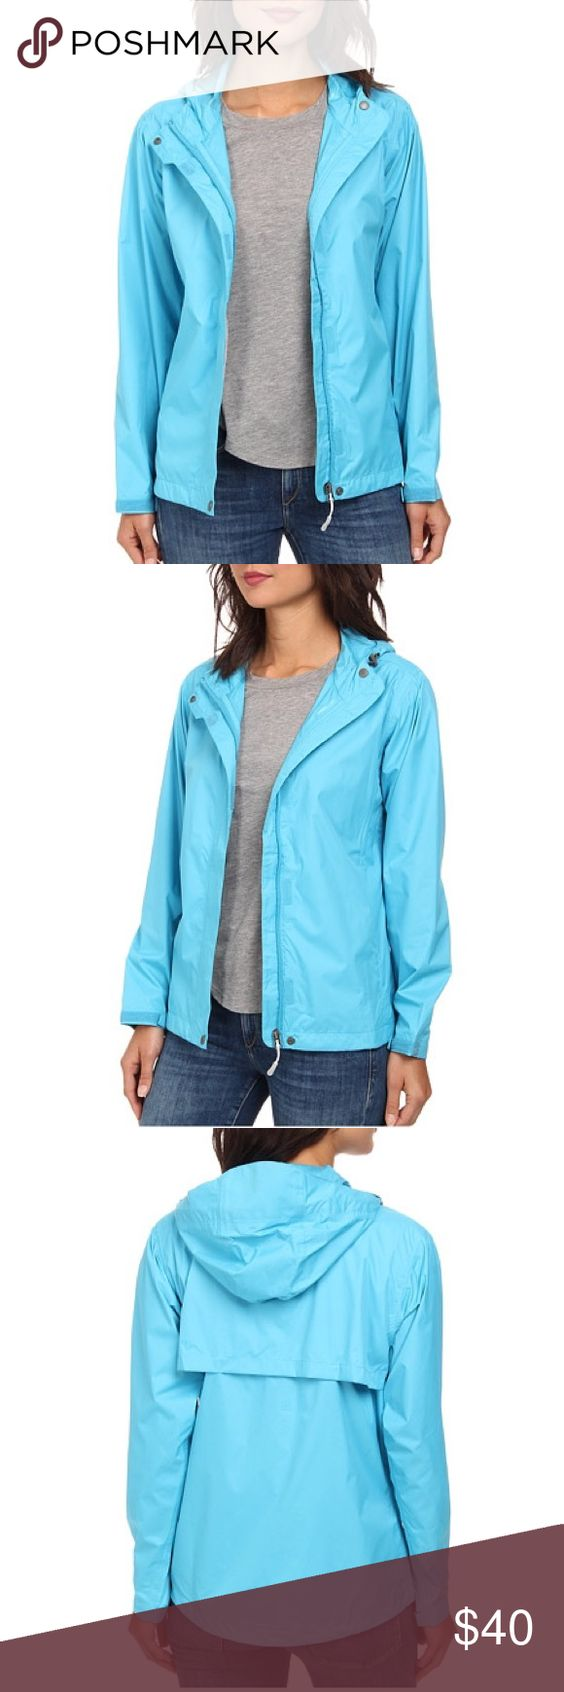 Turquoise Hooded Packable Windbreaker Jacket NWT